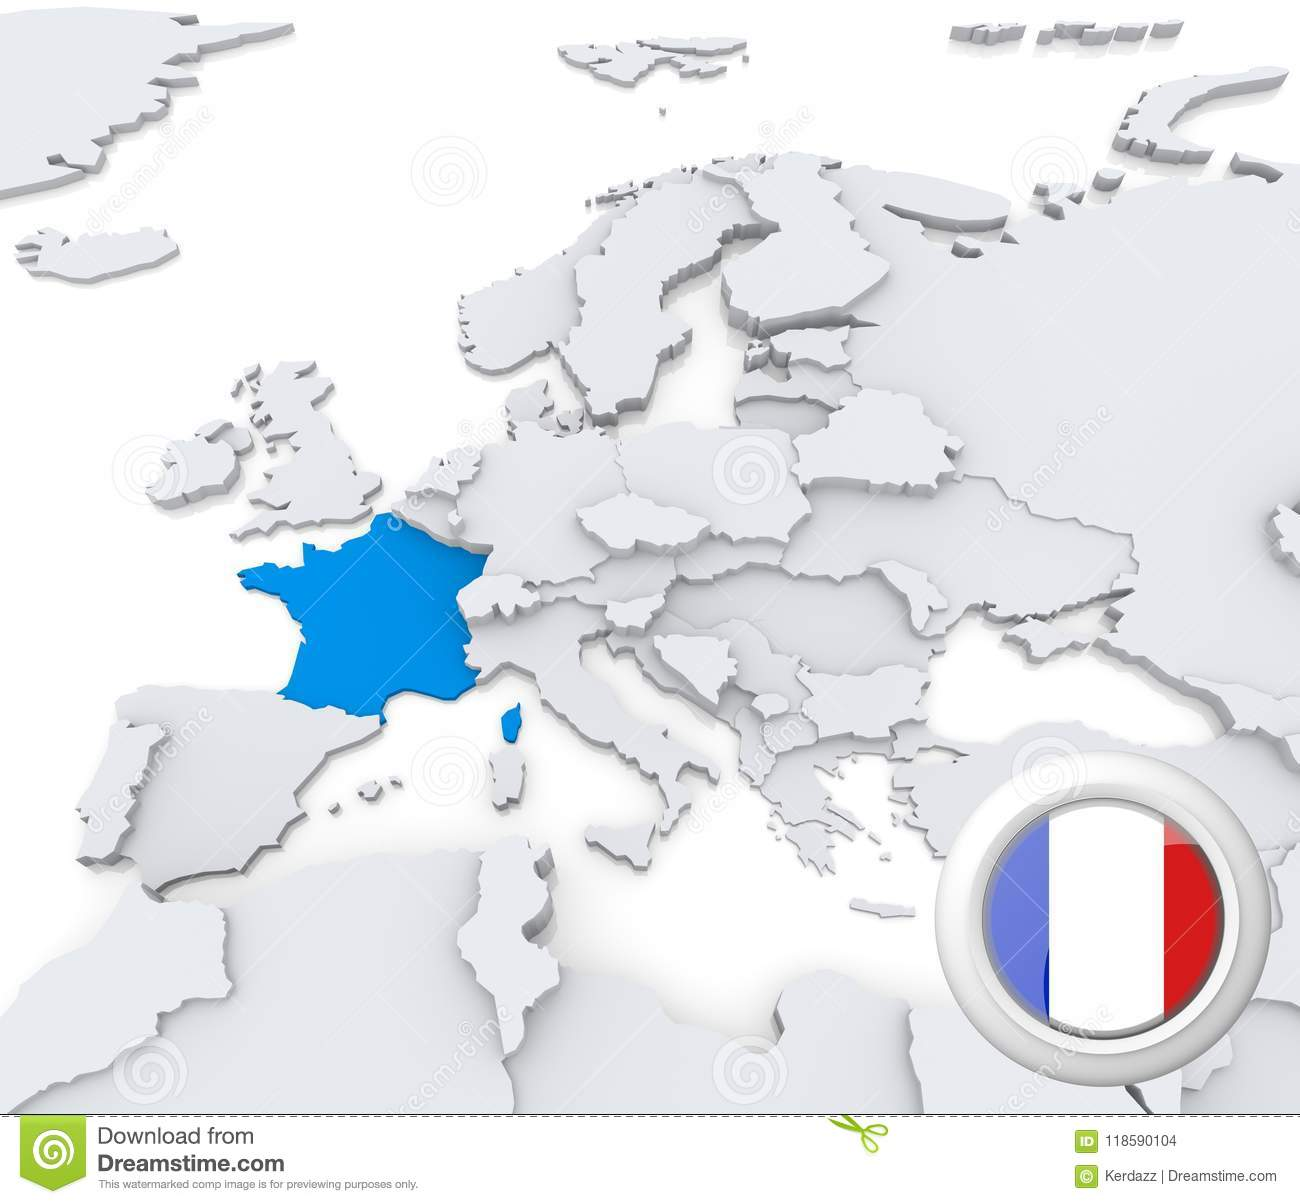 France On A Map Of Europe.France On Map Of Europe Stock Illustration Illustration Of